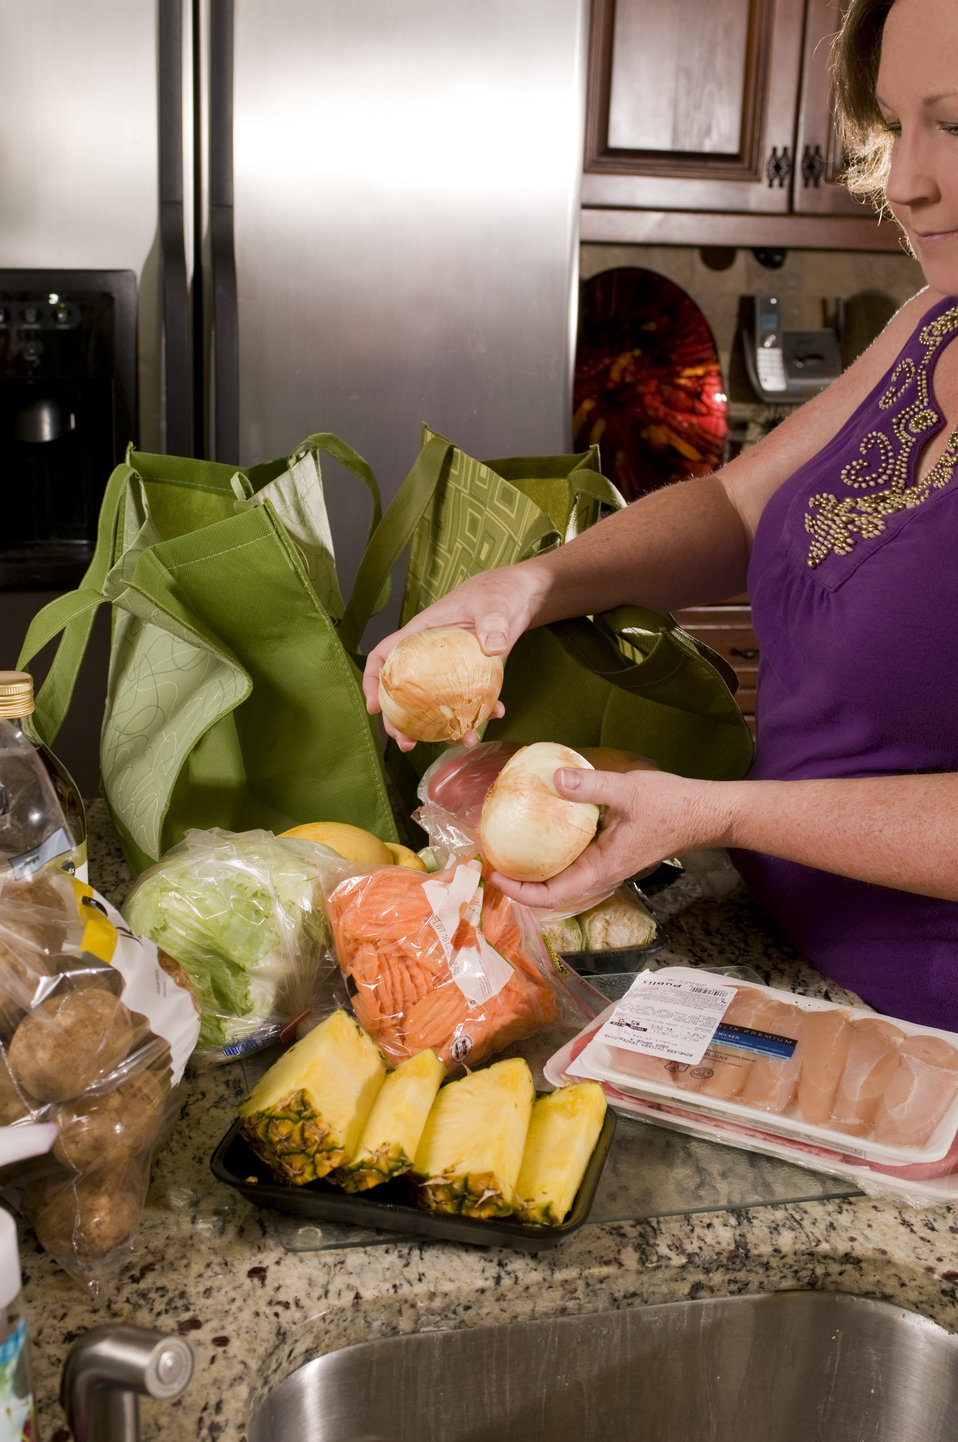 Holding two sweet onions, the woman pictured in this photograph was in the process of sorting through her cache of newly-purchased groceries